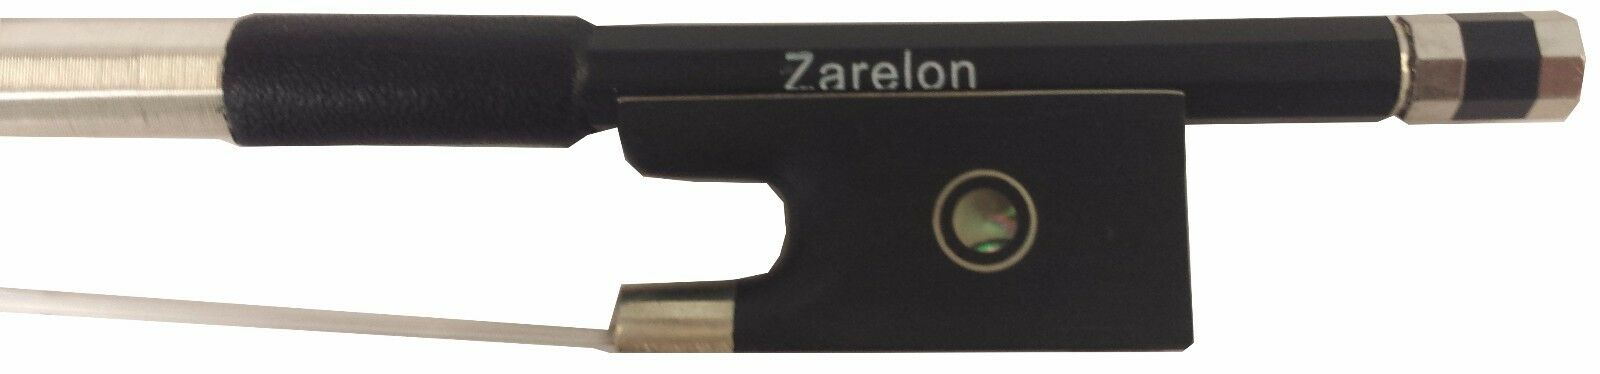 4 4 Stunning Carbon Fiber Violin Bow with Zarelon Unbreakable Acoustic Bow Hair